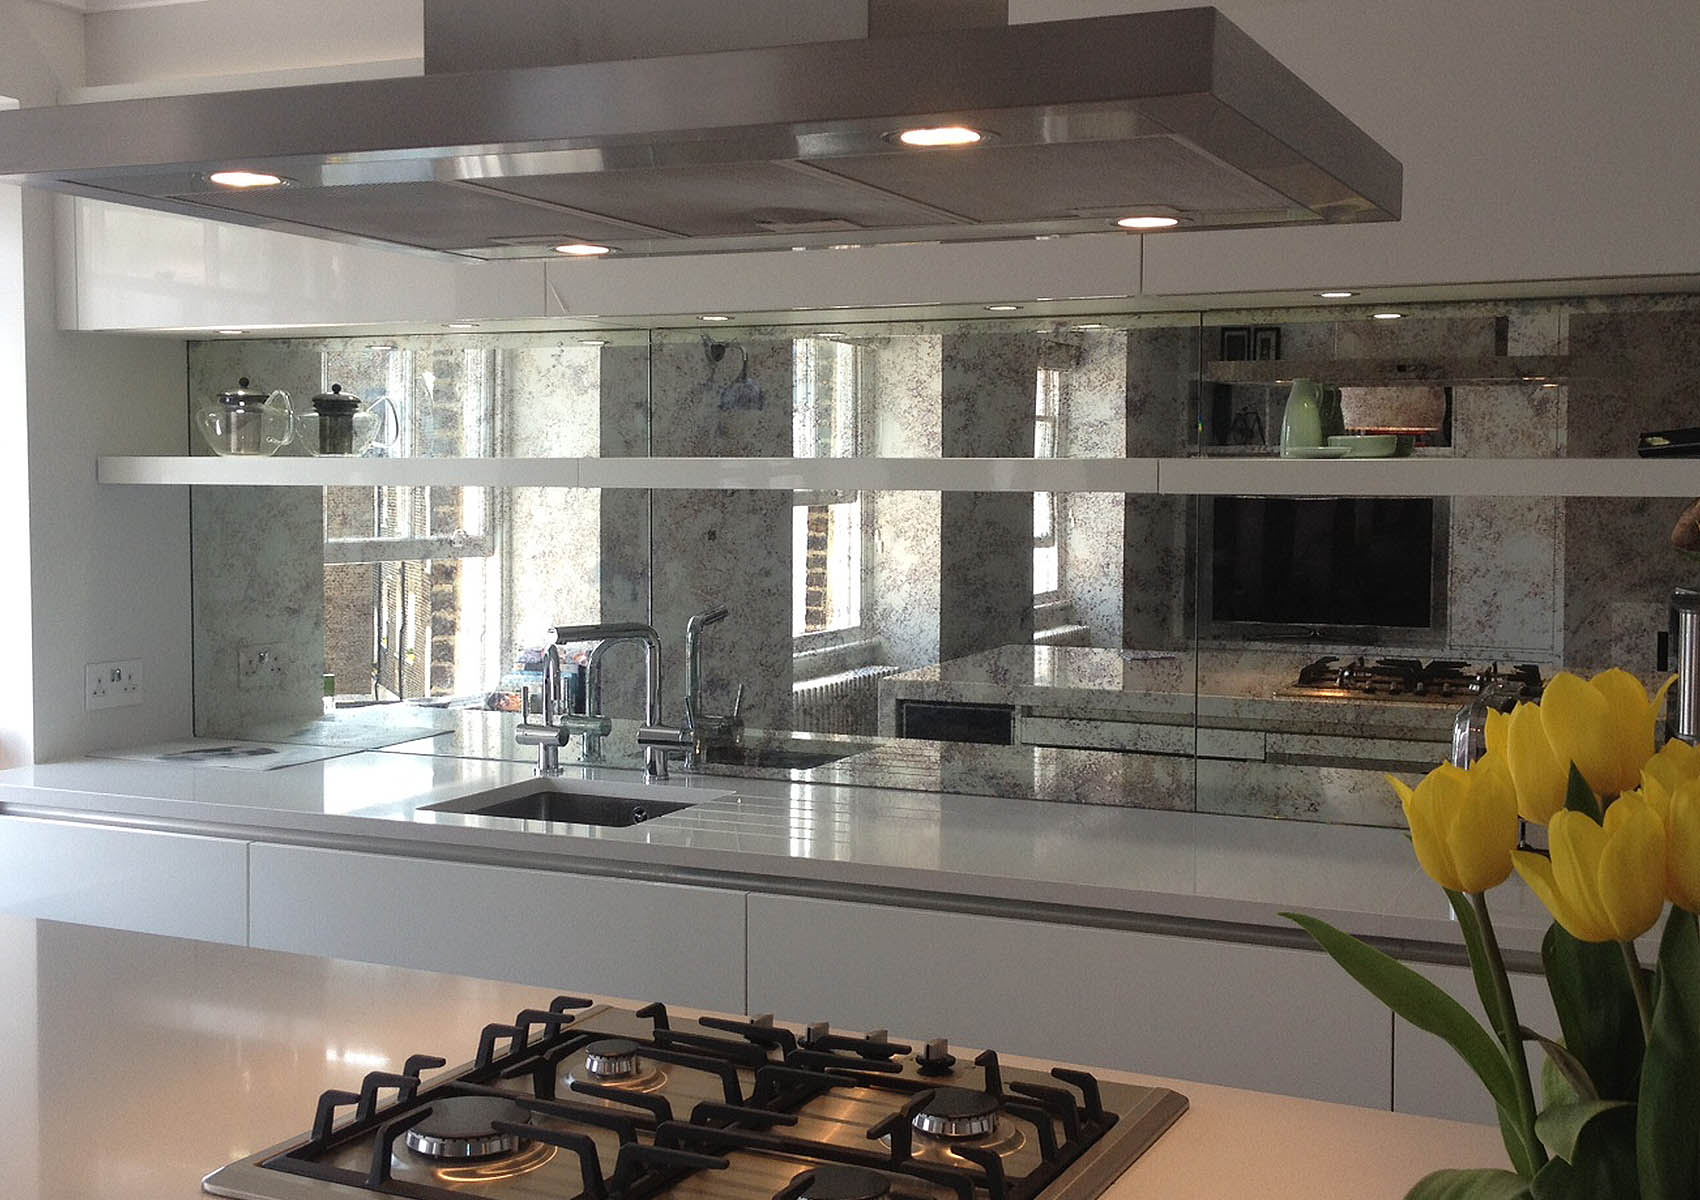 Kitchen Splashback in large equally sized panels